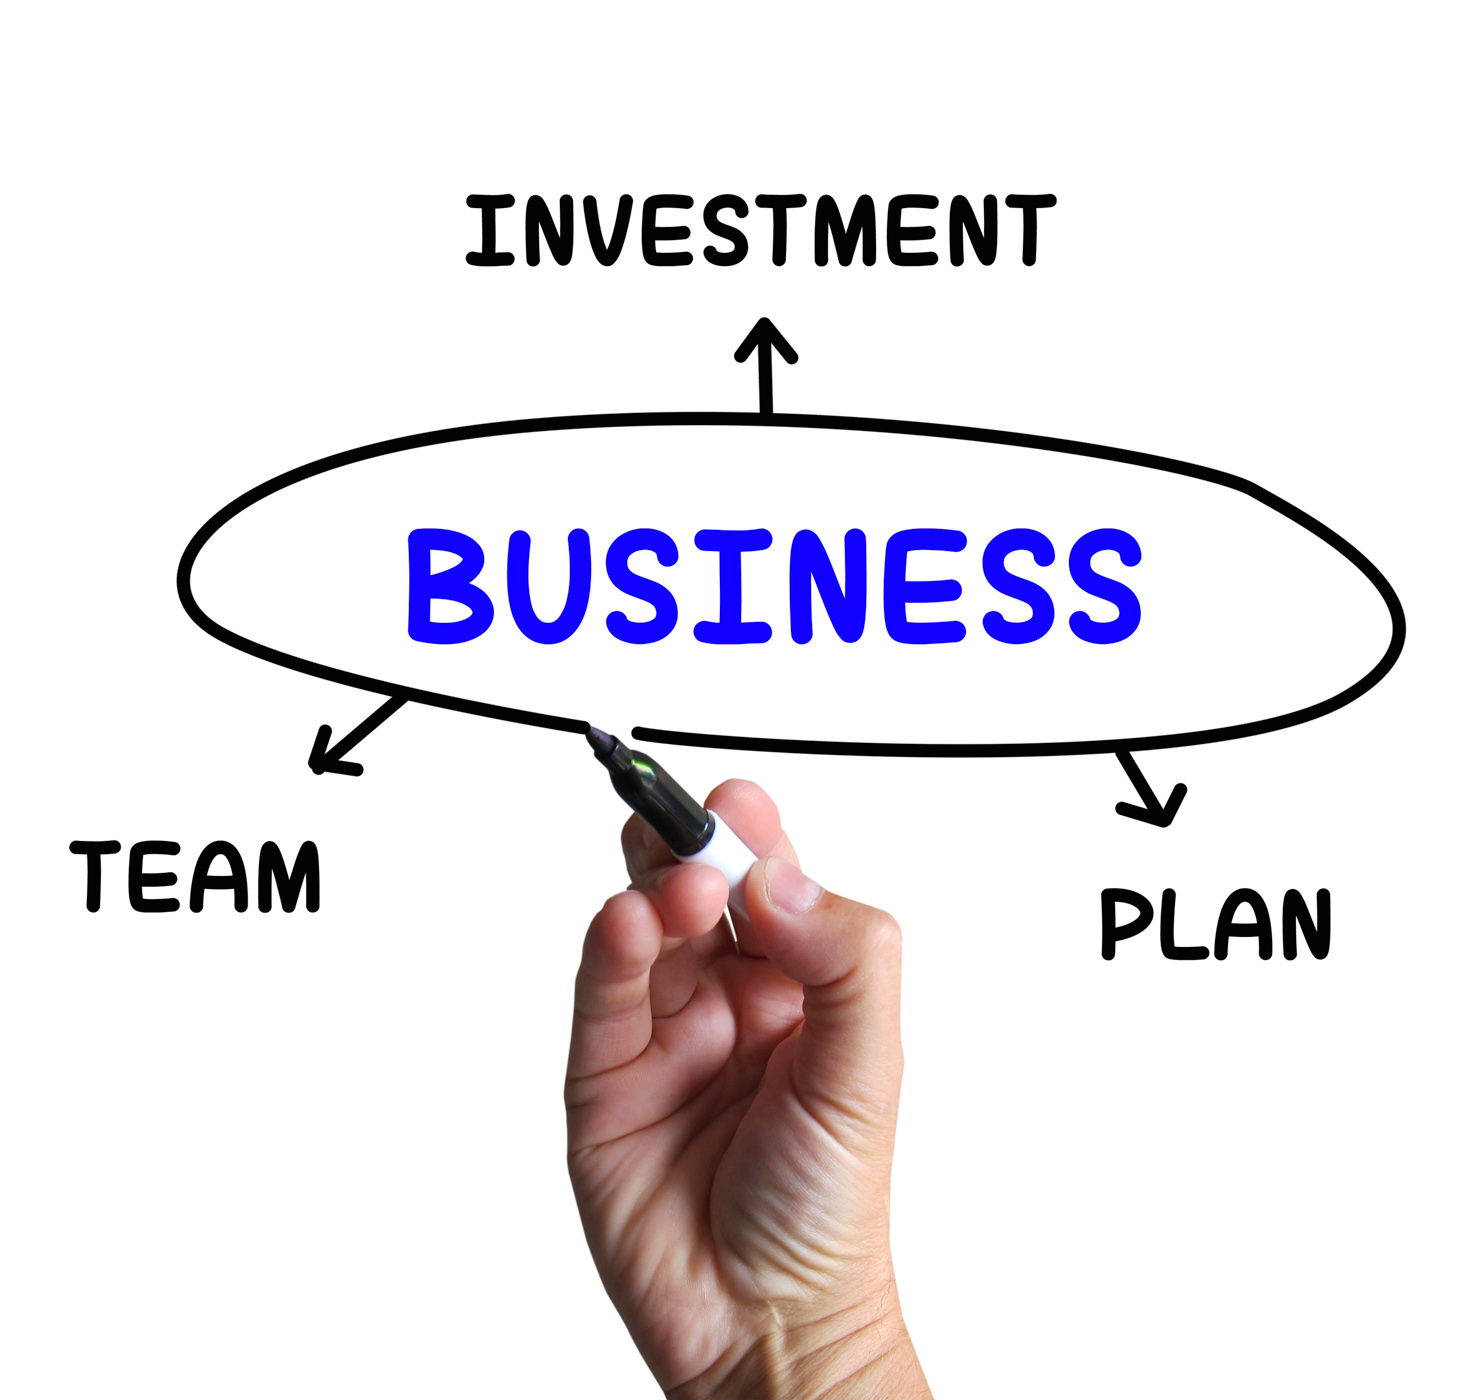 Business Diagram Means Plan Team And Investment, Institution, Team, Sales, Plan, HQ Photo